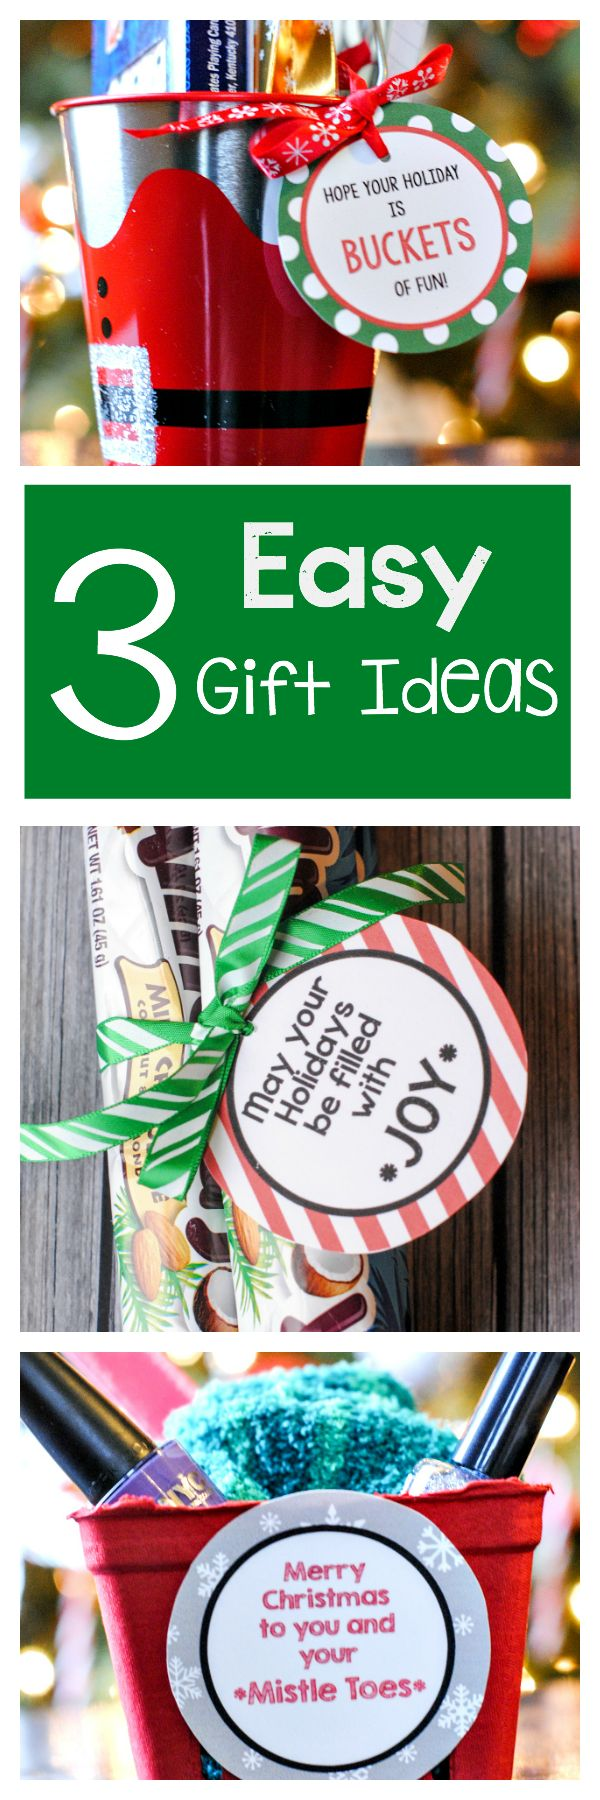 20 Best Great Gift Ideas Images On Pinterest Cute Cats Gift Guide